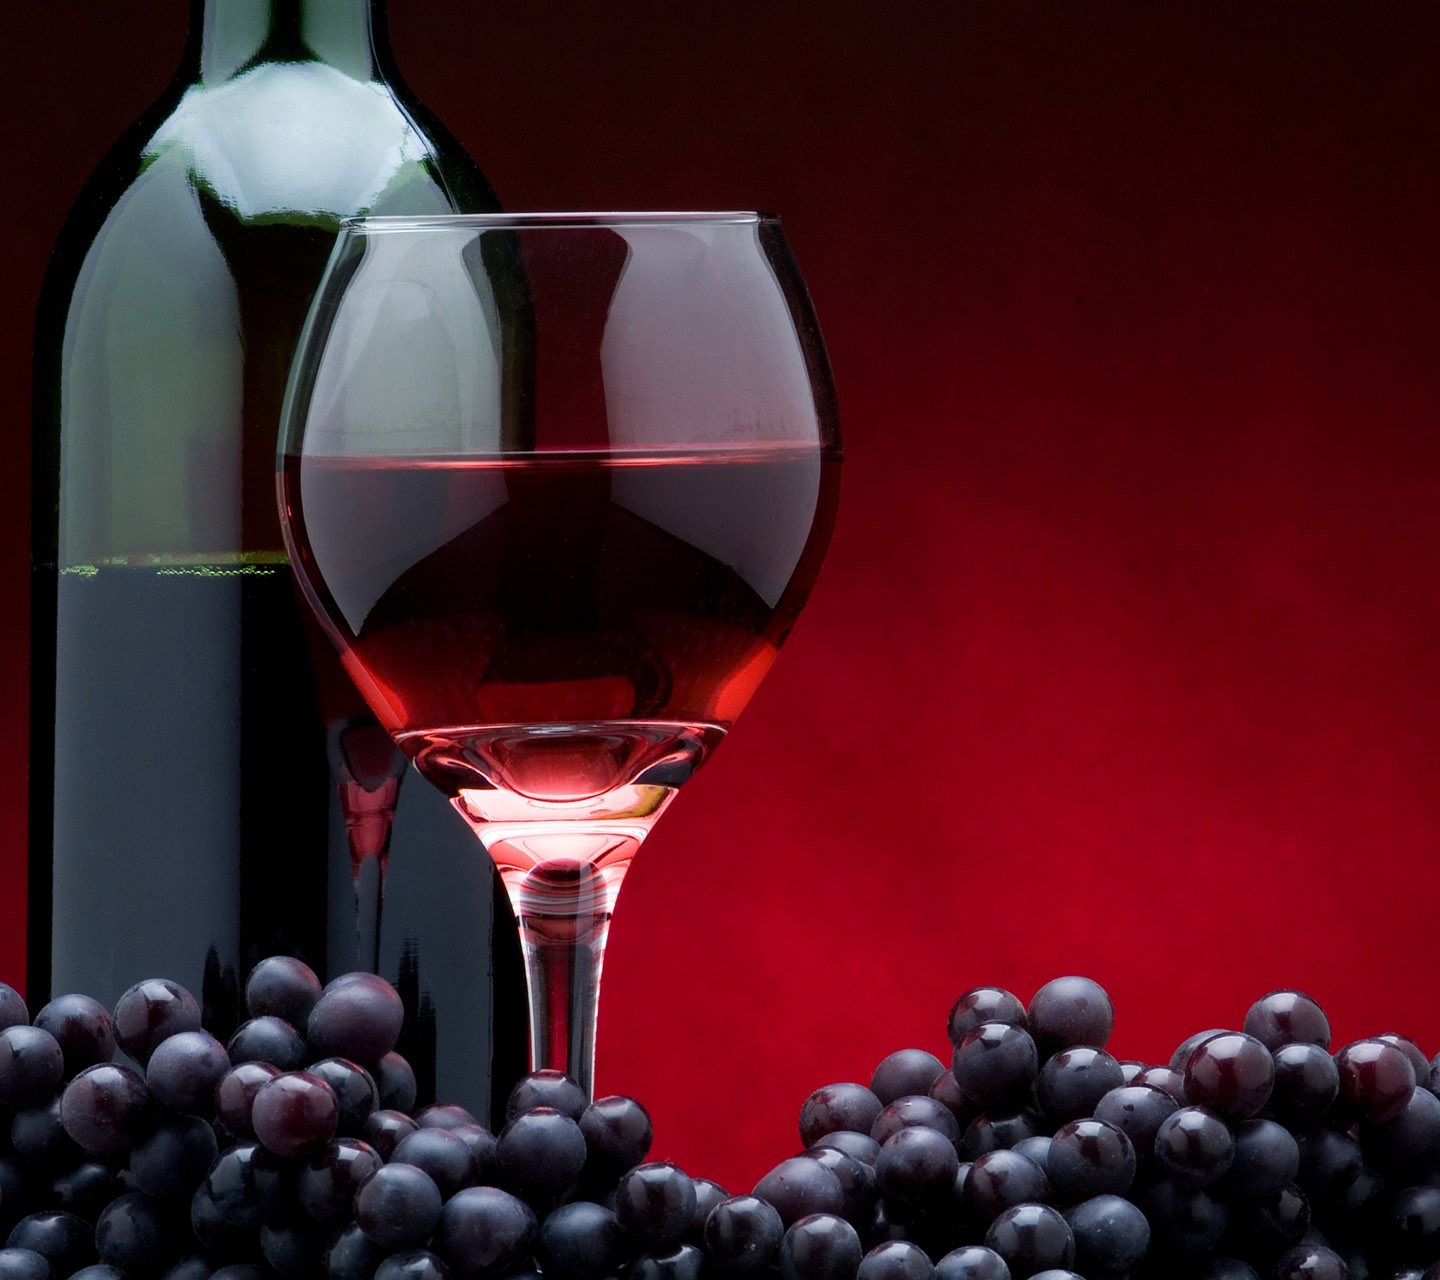 Wine Samsung Galaxy S3 Wallpaper   HD Wallpapers   9to5Wallpapers 1440x1280